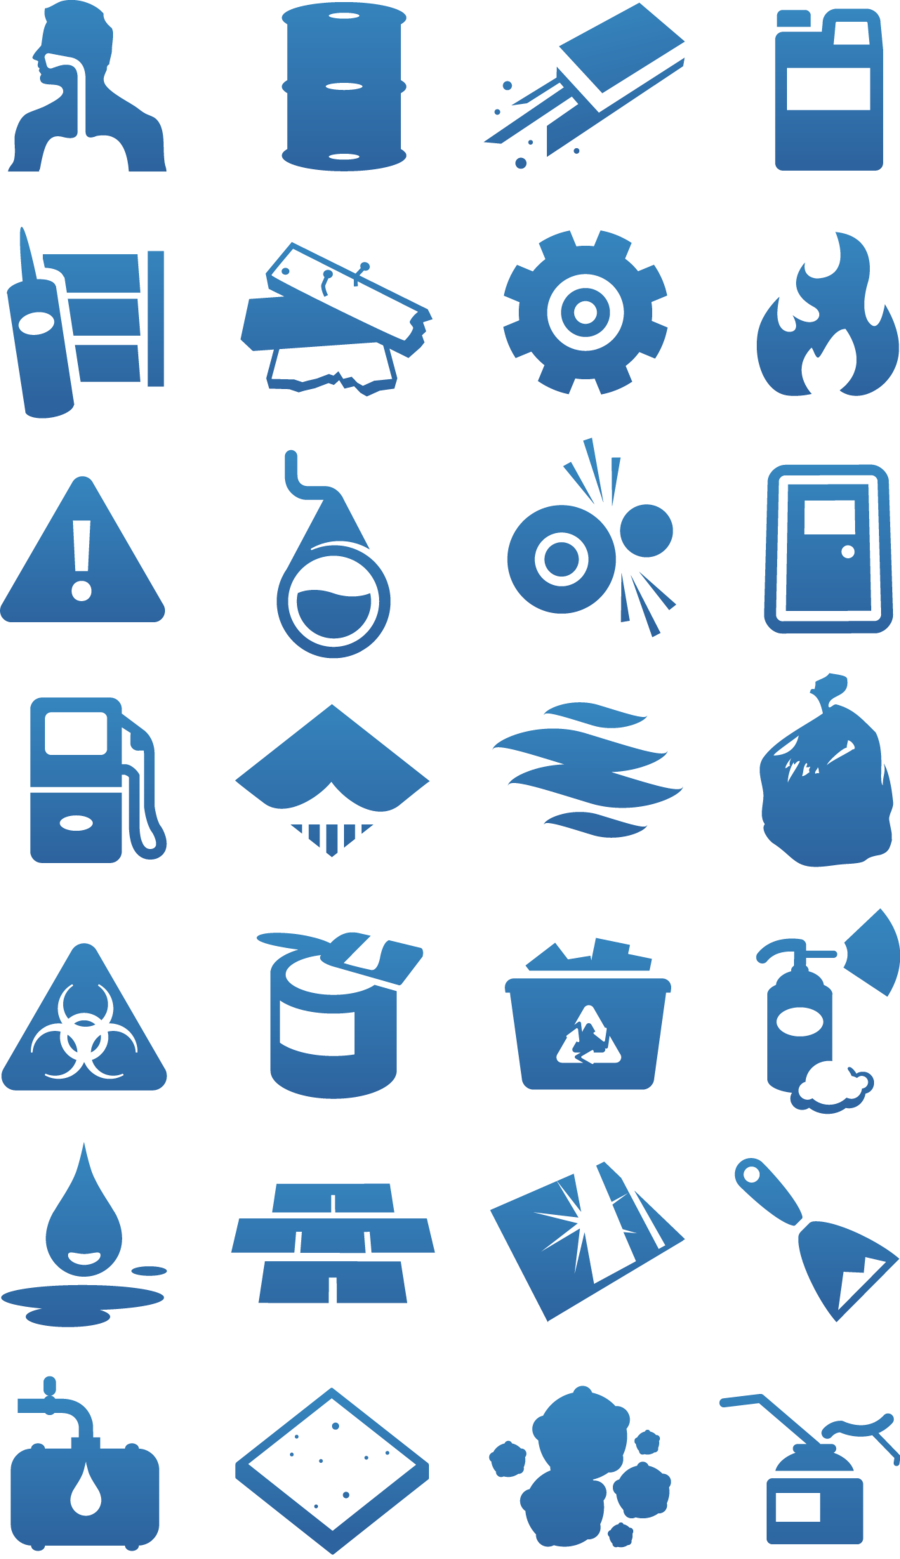 Information Blue Text Transparent Png Image Clipart Free Download